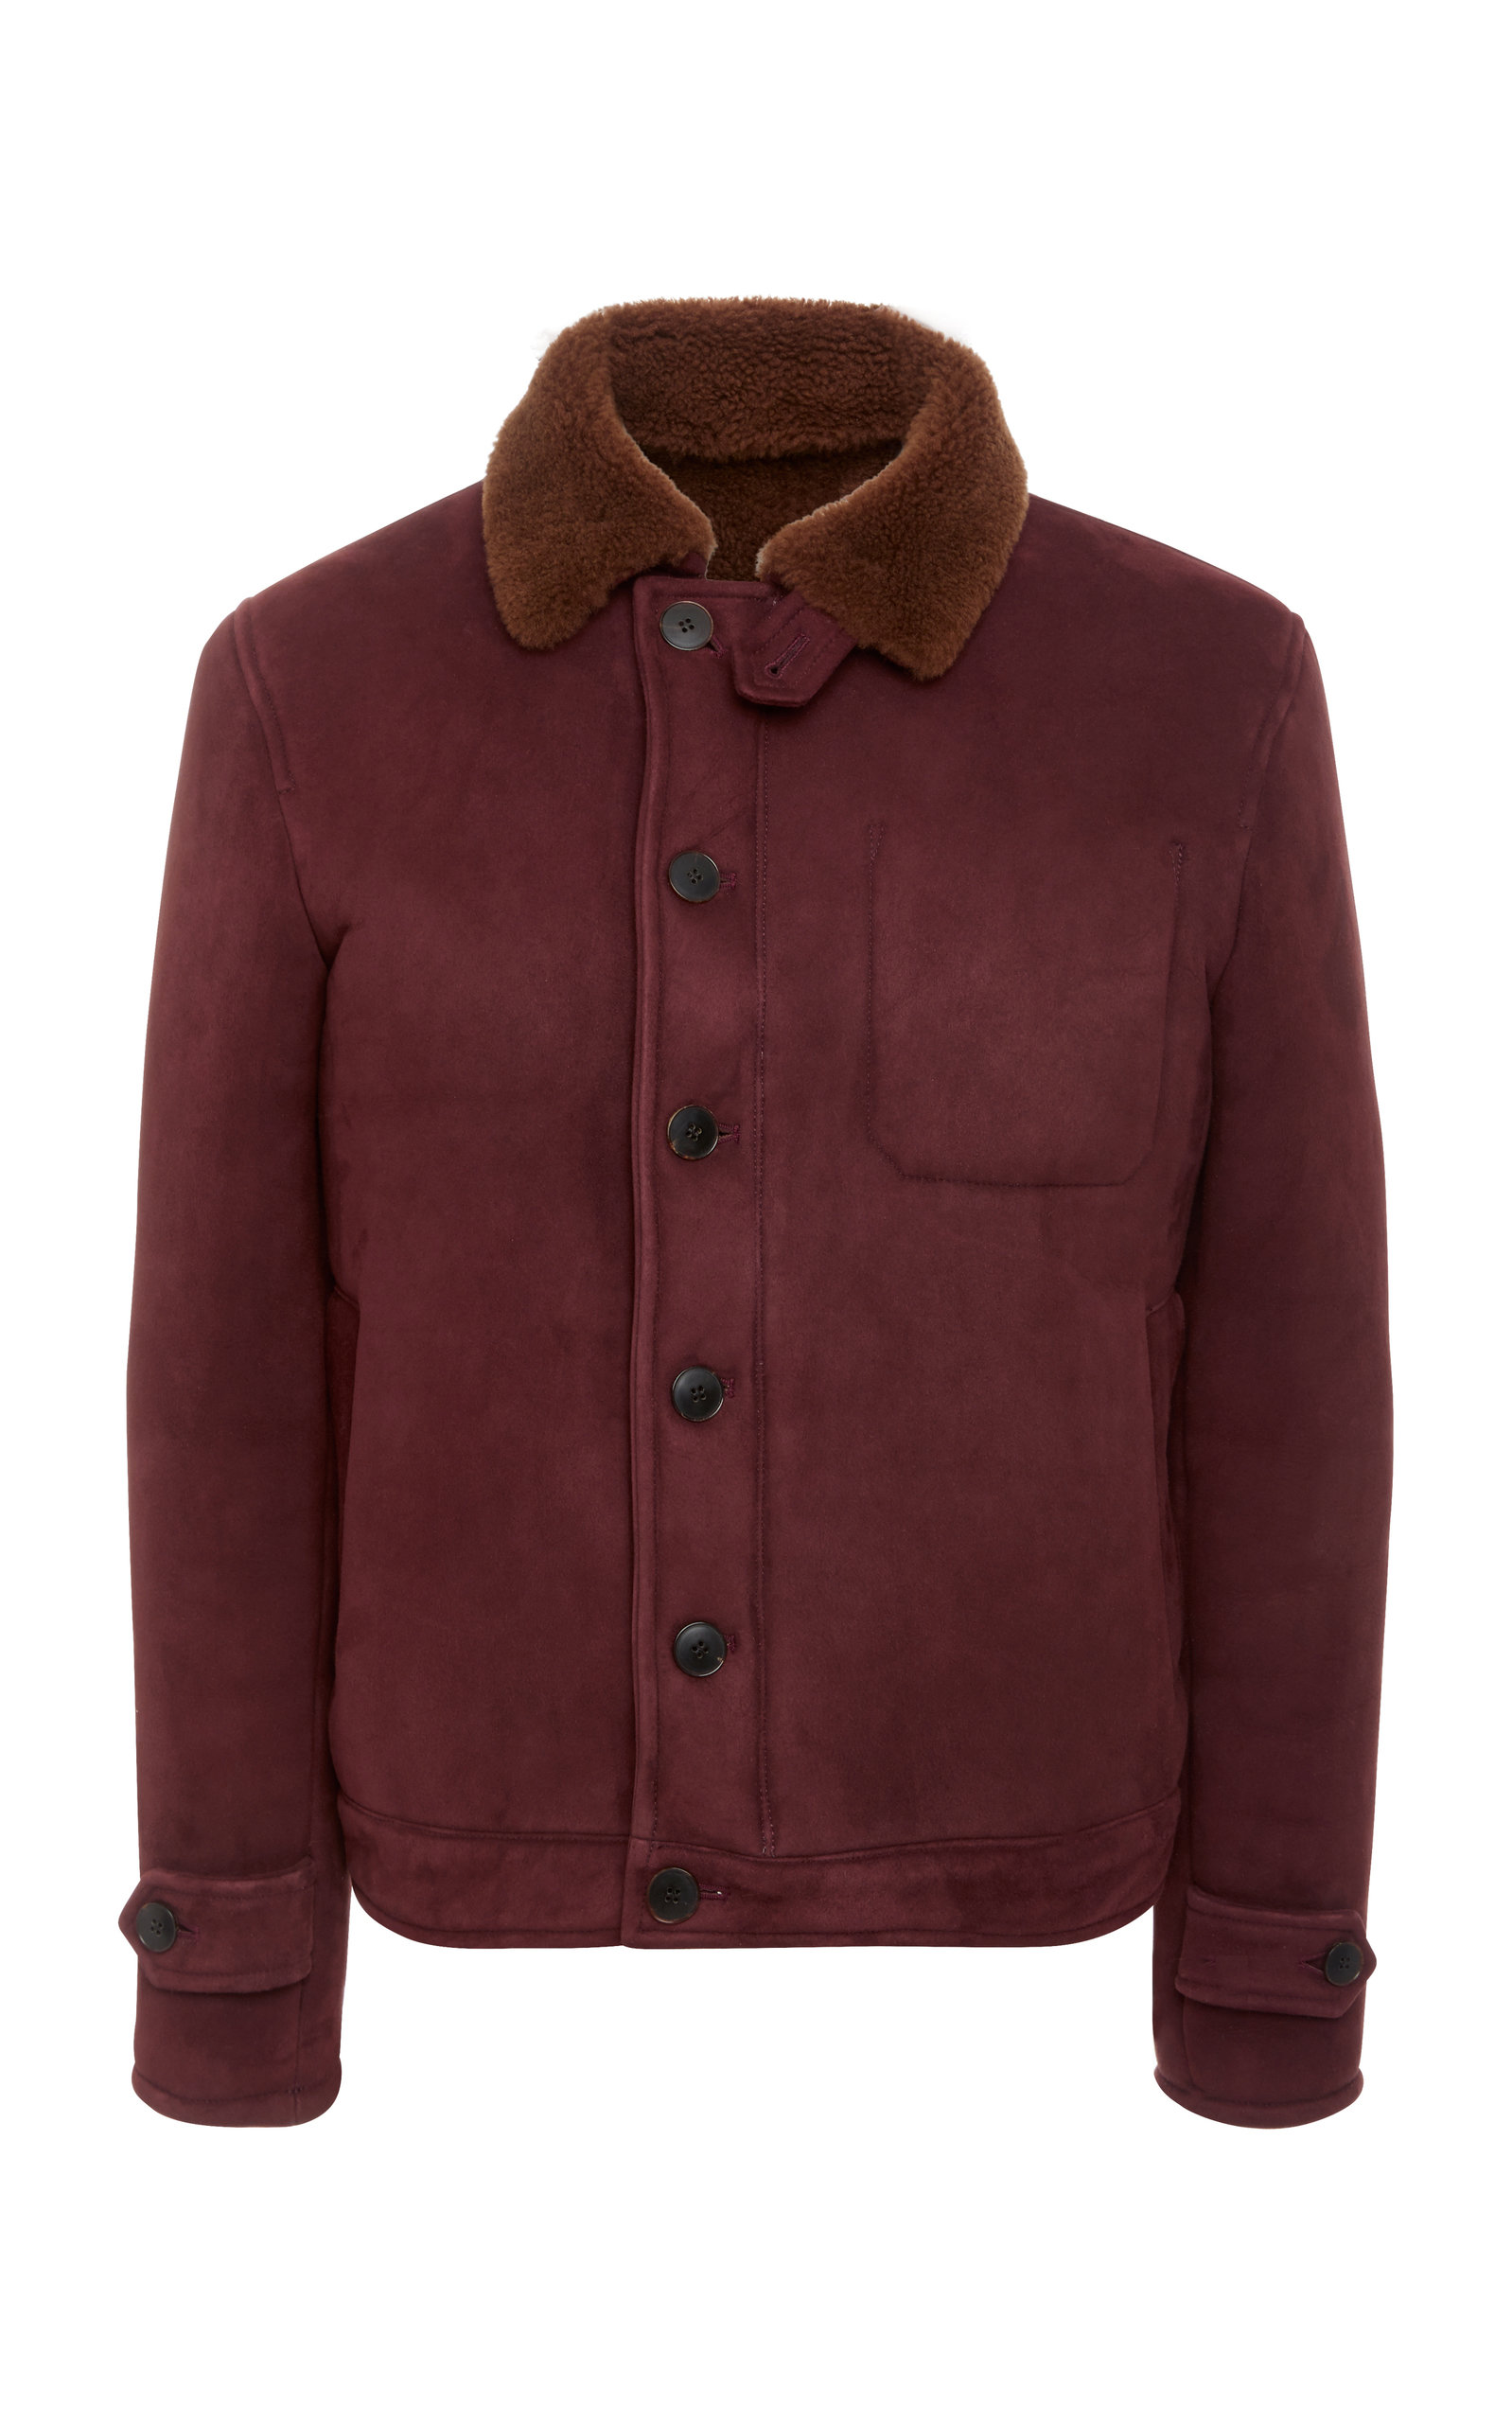 EIDOS SUEDE AND SHEARLING JACKET